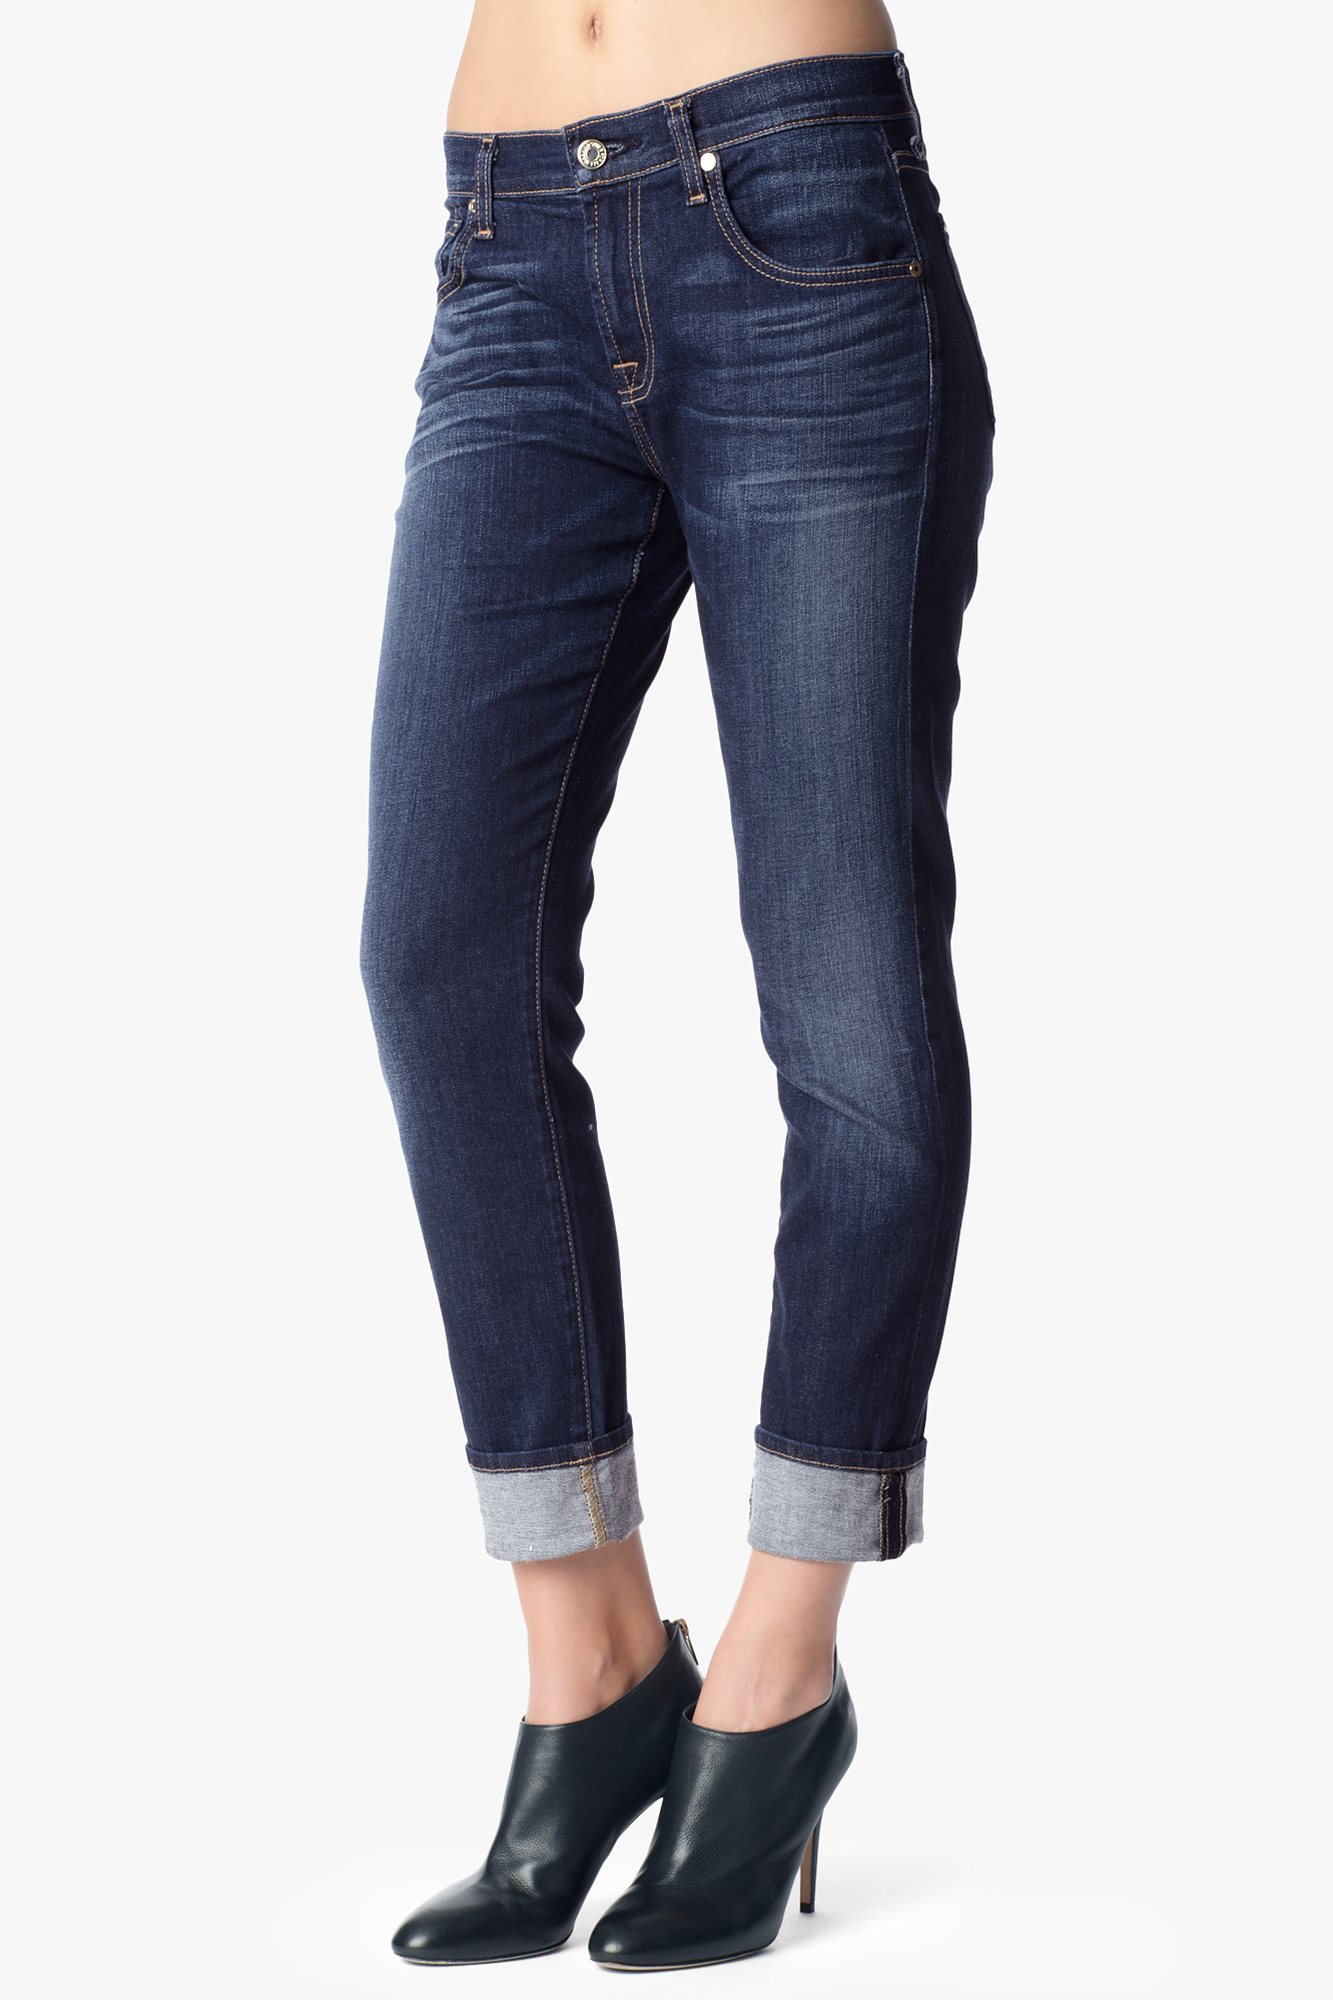 Relaxed Skinny In Genuine Medium Indigo | 7 For All Mankind